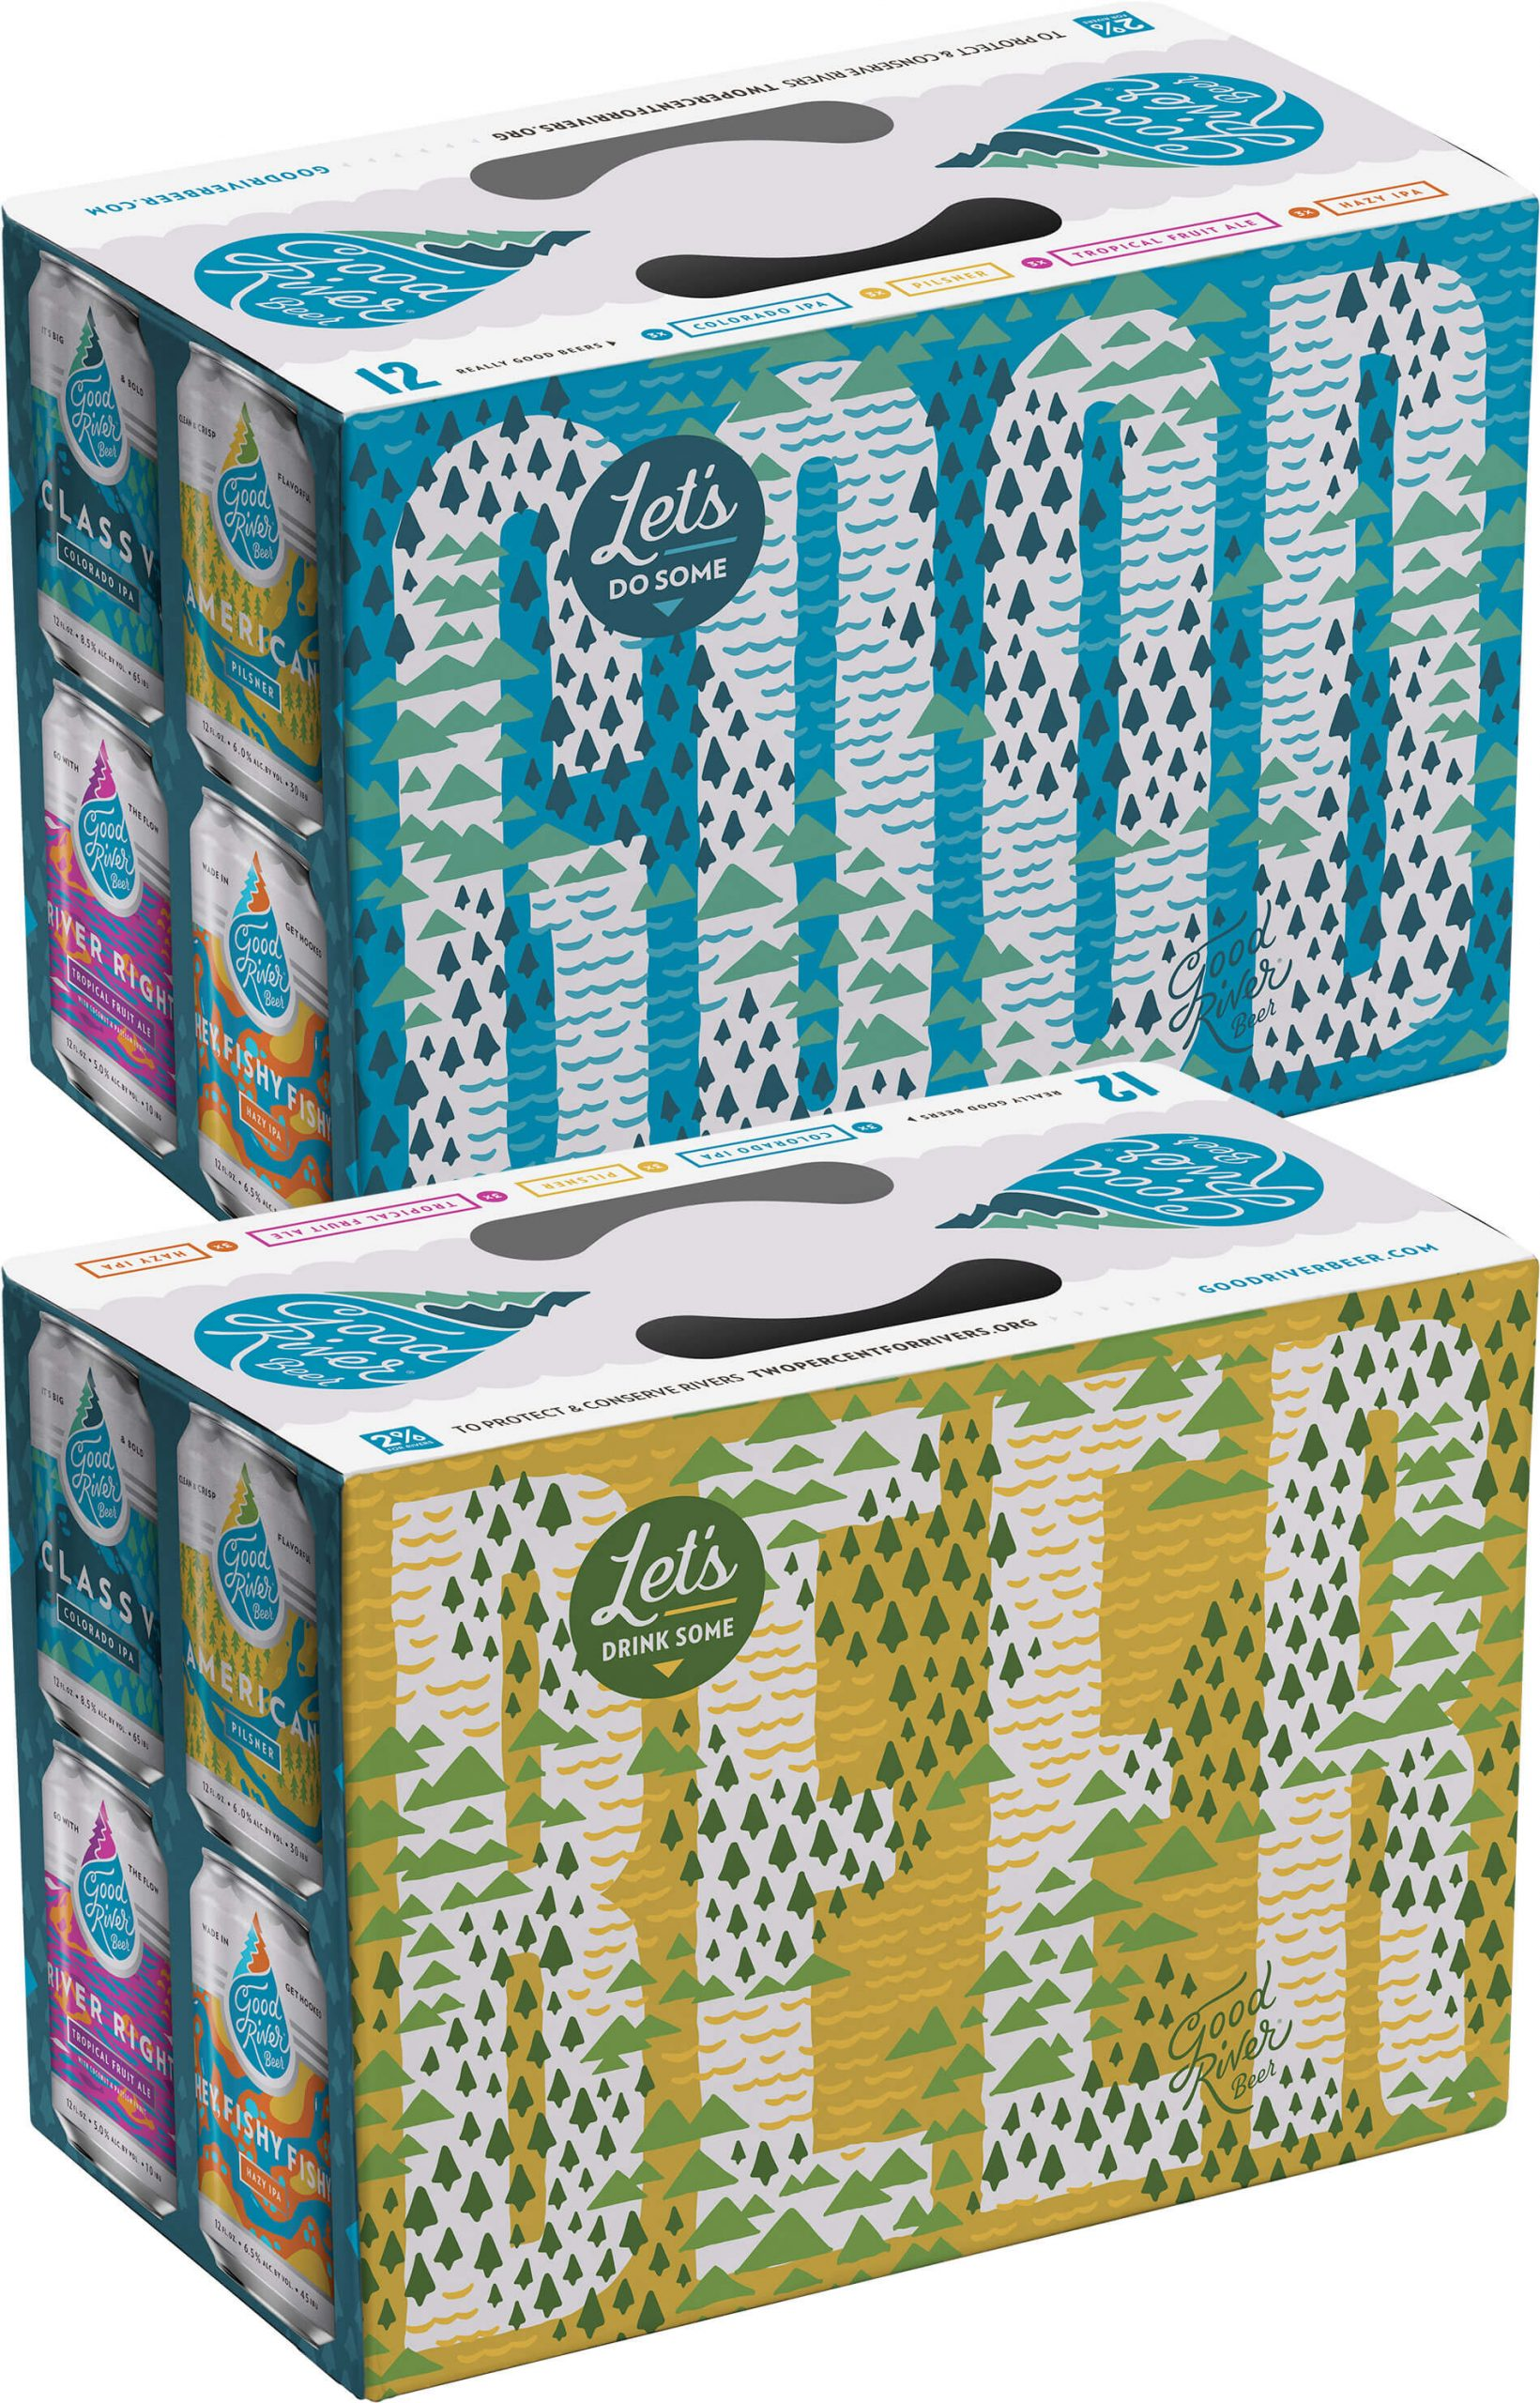 Packaging design for Variety 12 Packs by Good River Beer Company